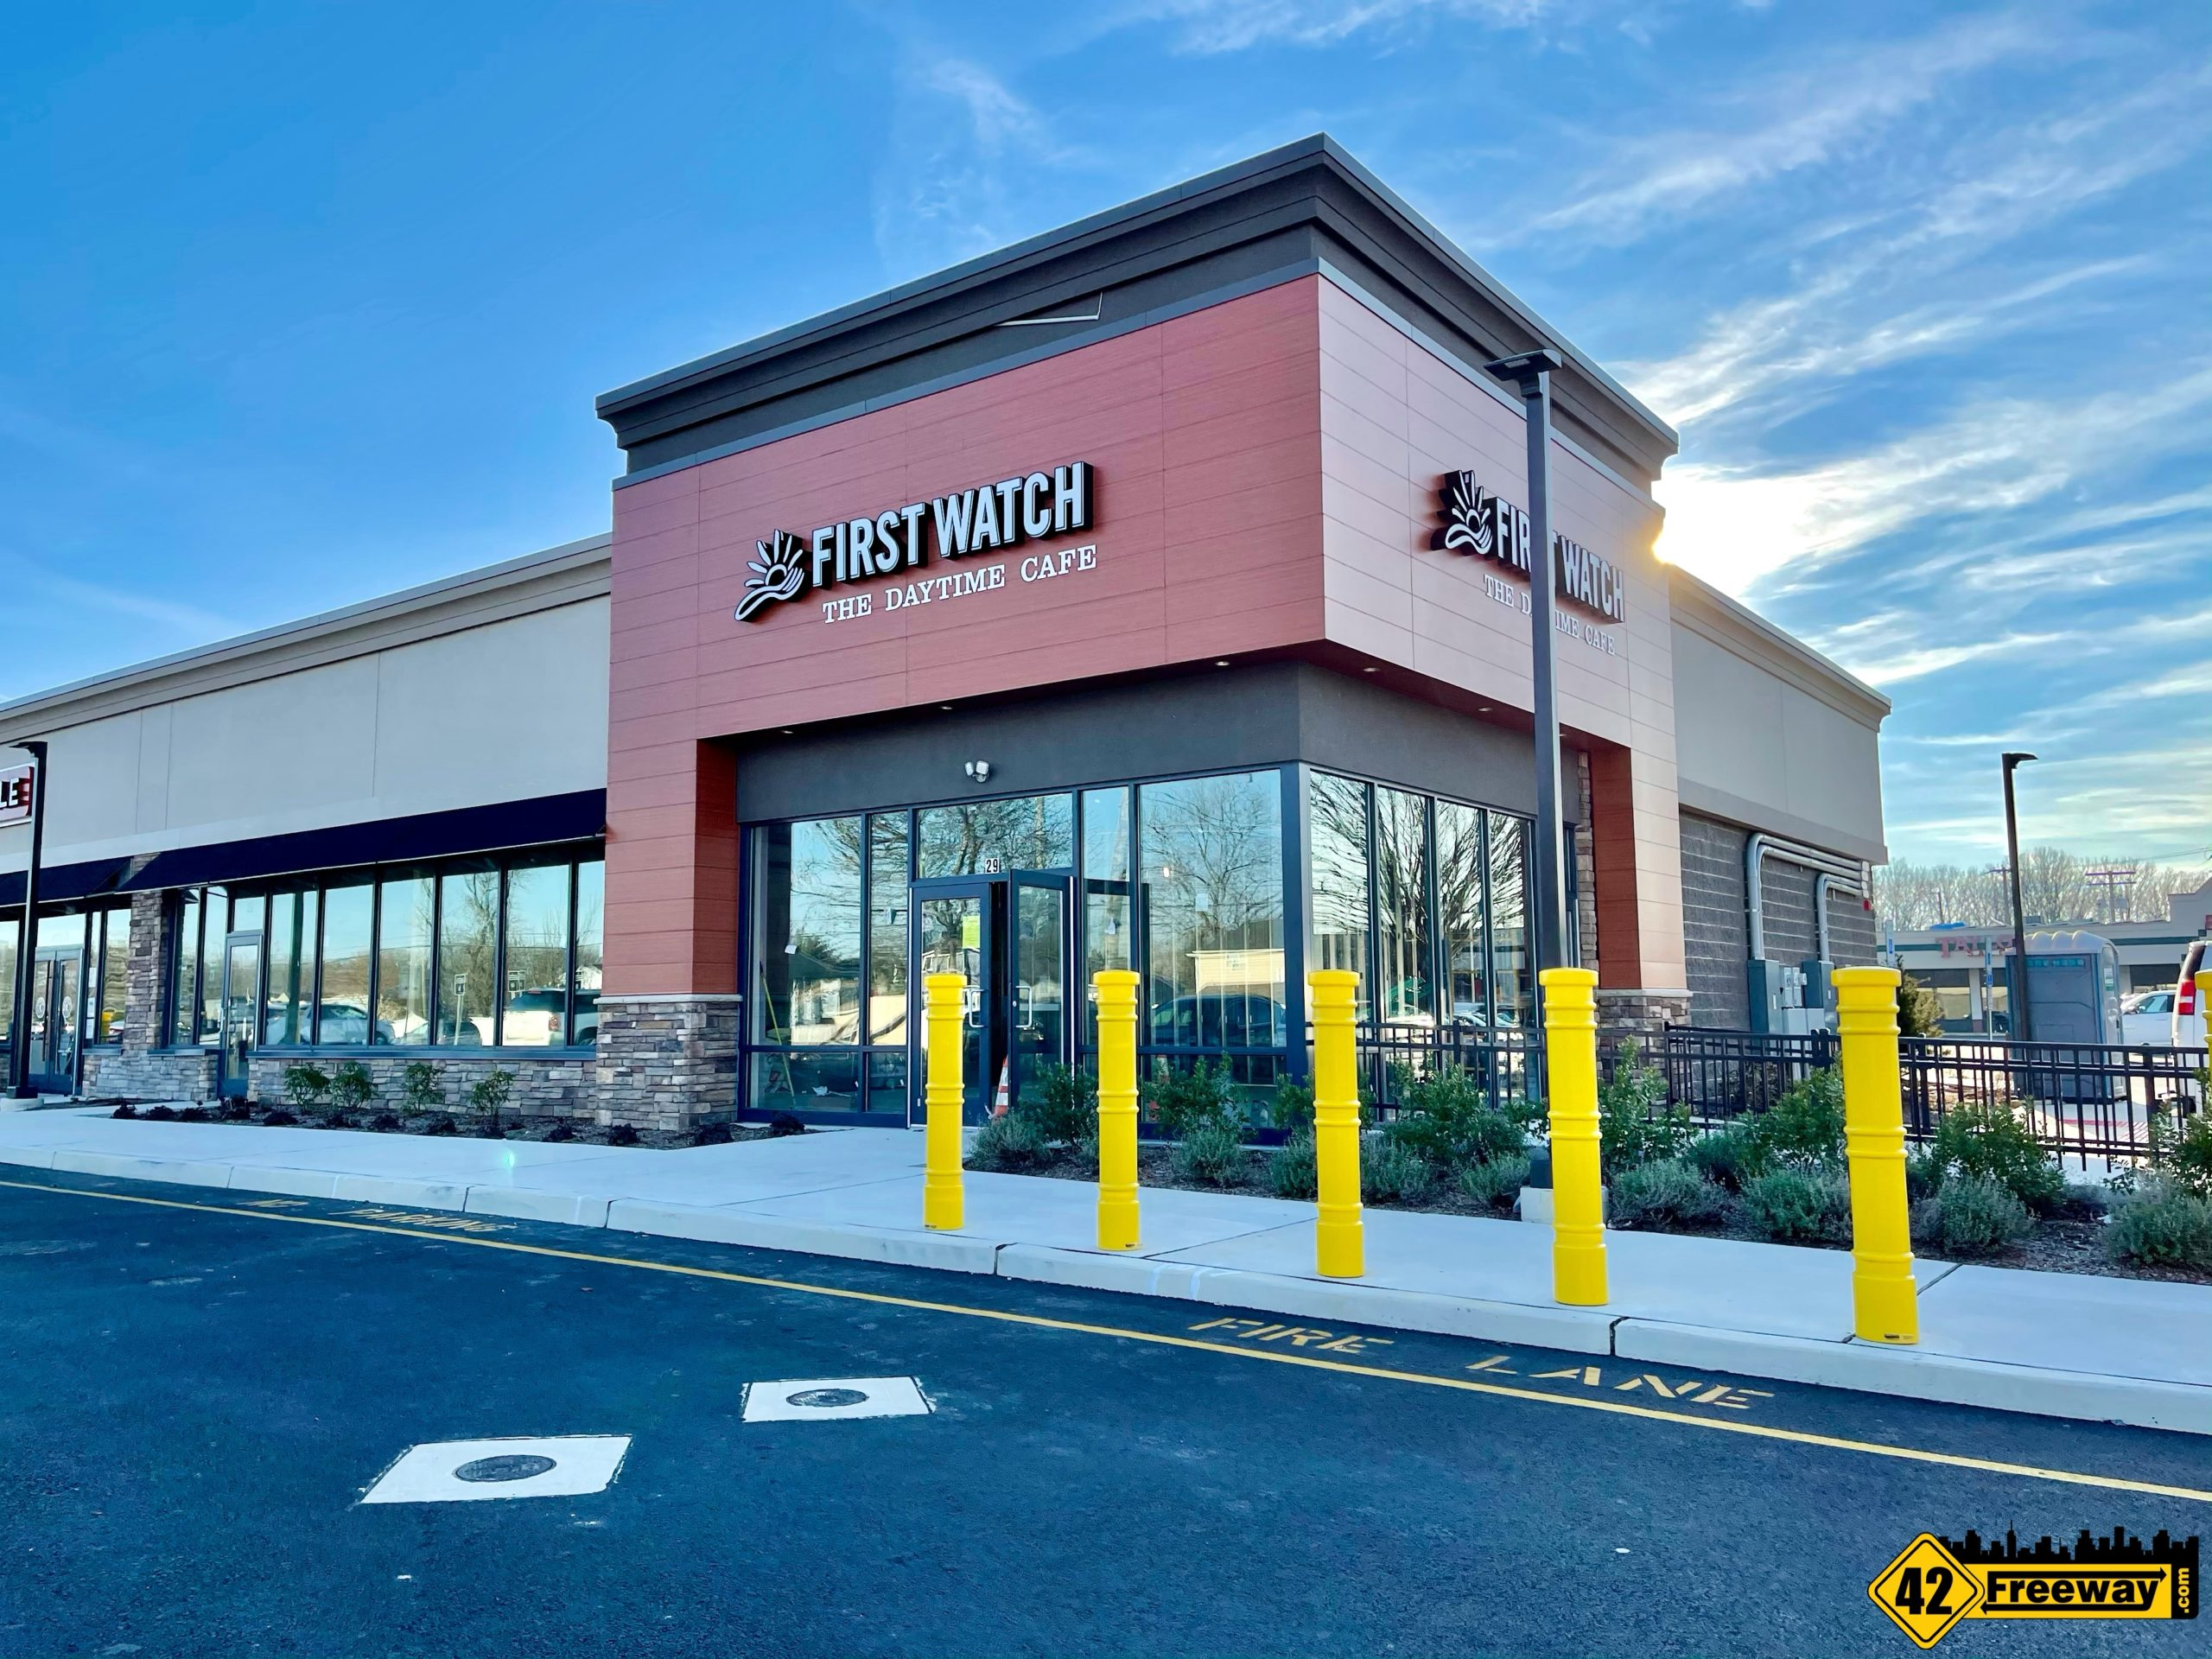 First Watch Restaurant Build-Out Underway in Washington Township.  Job Postings Back Online